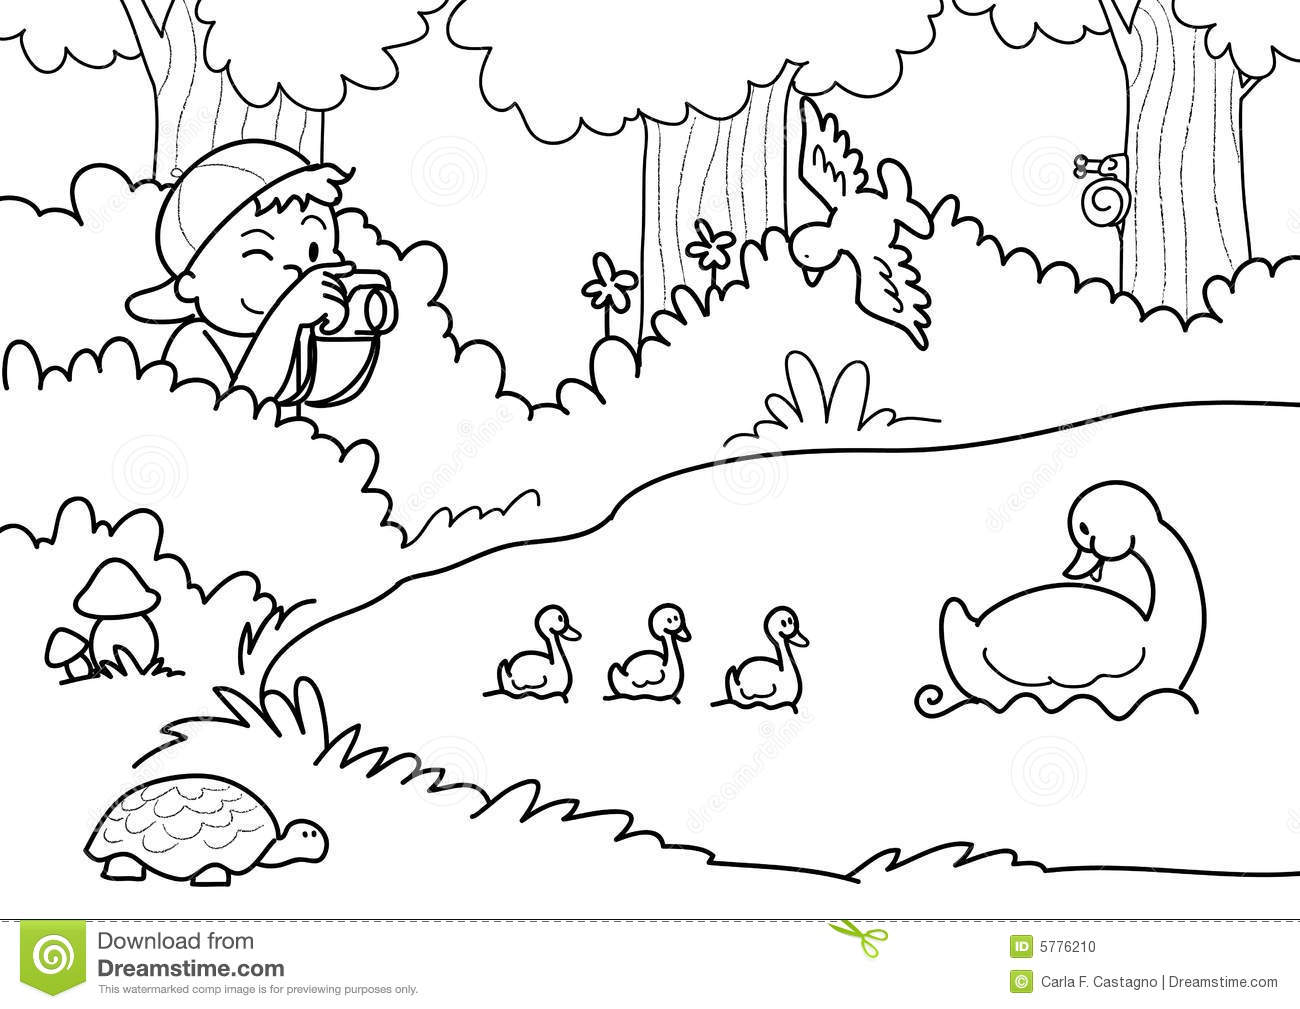 Coloring pictures of nature - Royalty Free Stock Photo Download Shooting Nature Coloring